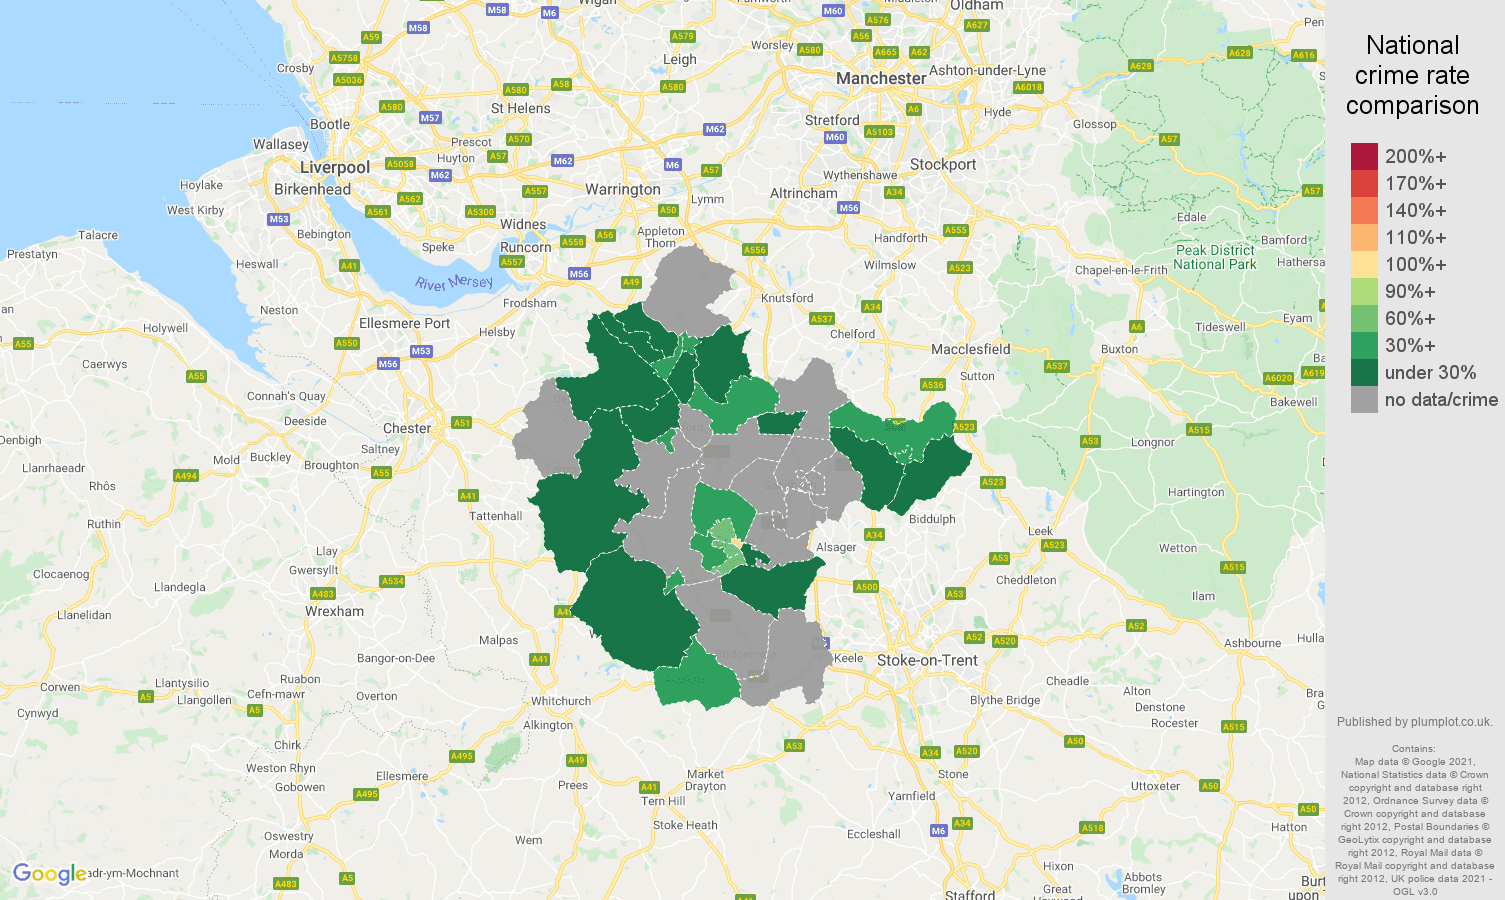 Crewe robbery crime rate comparison map